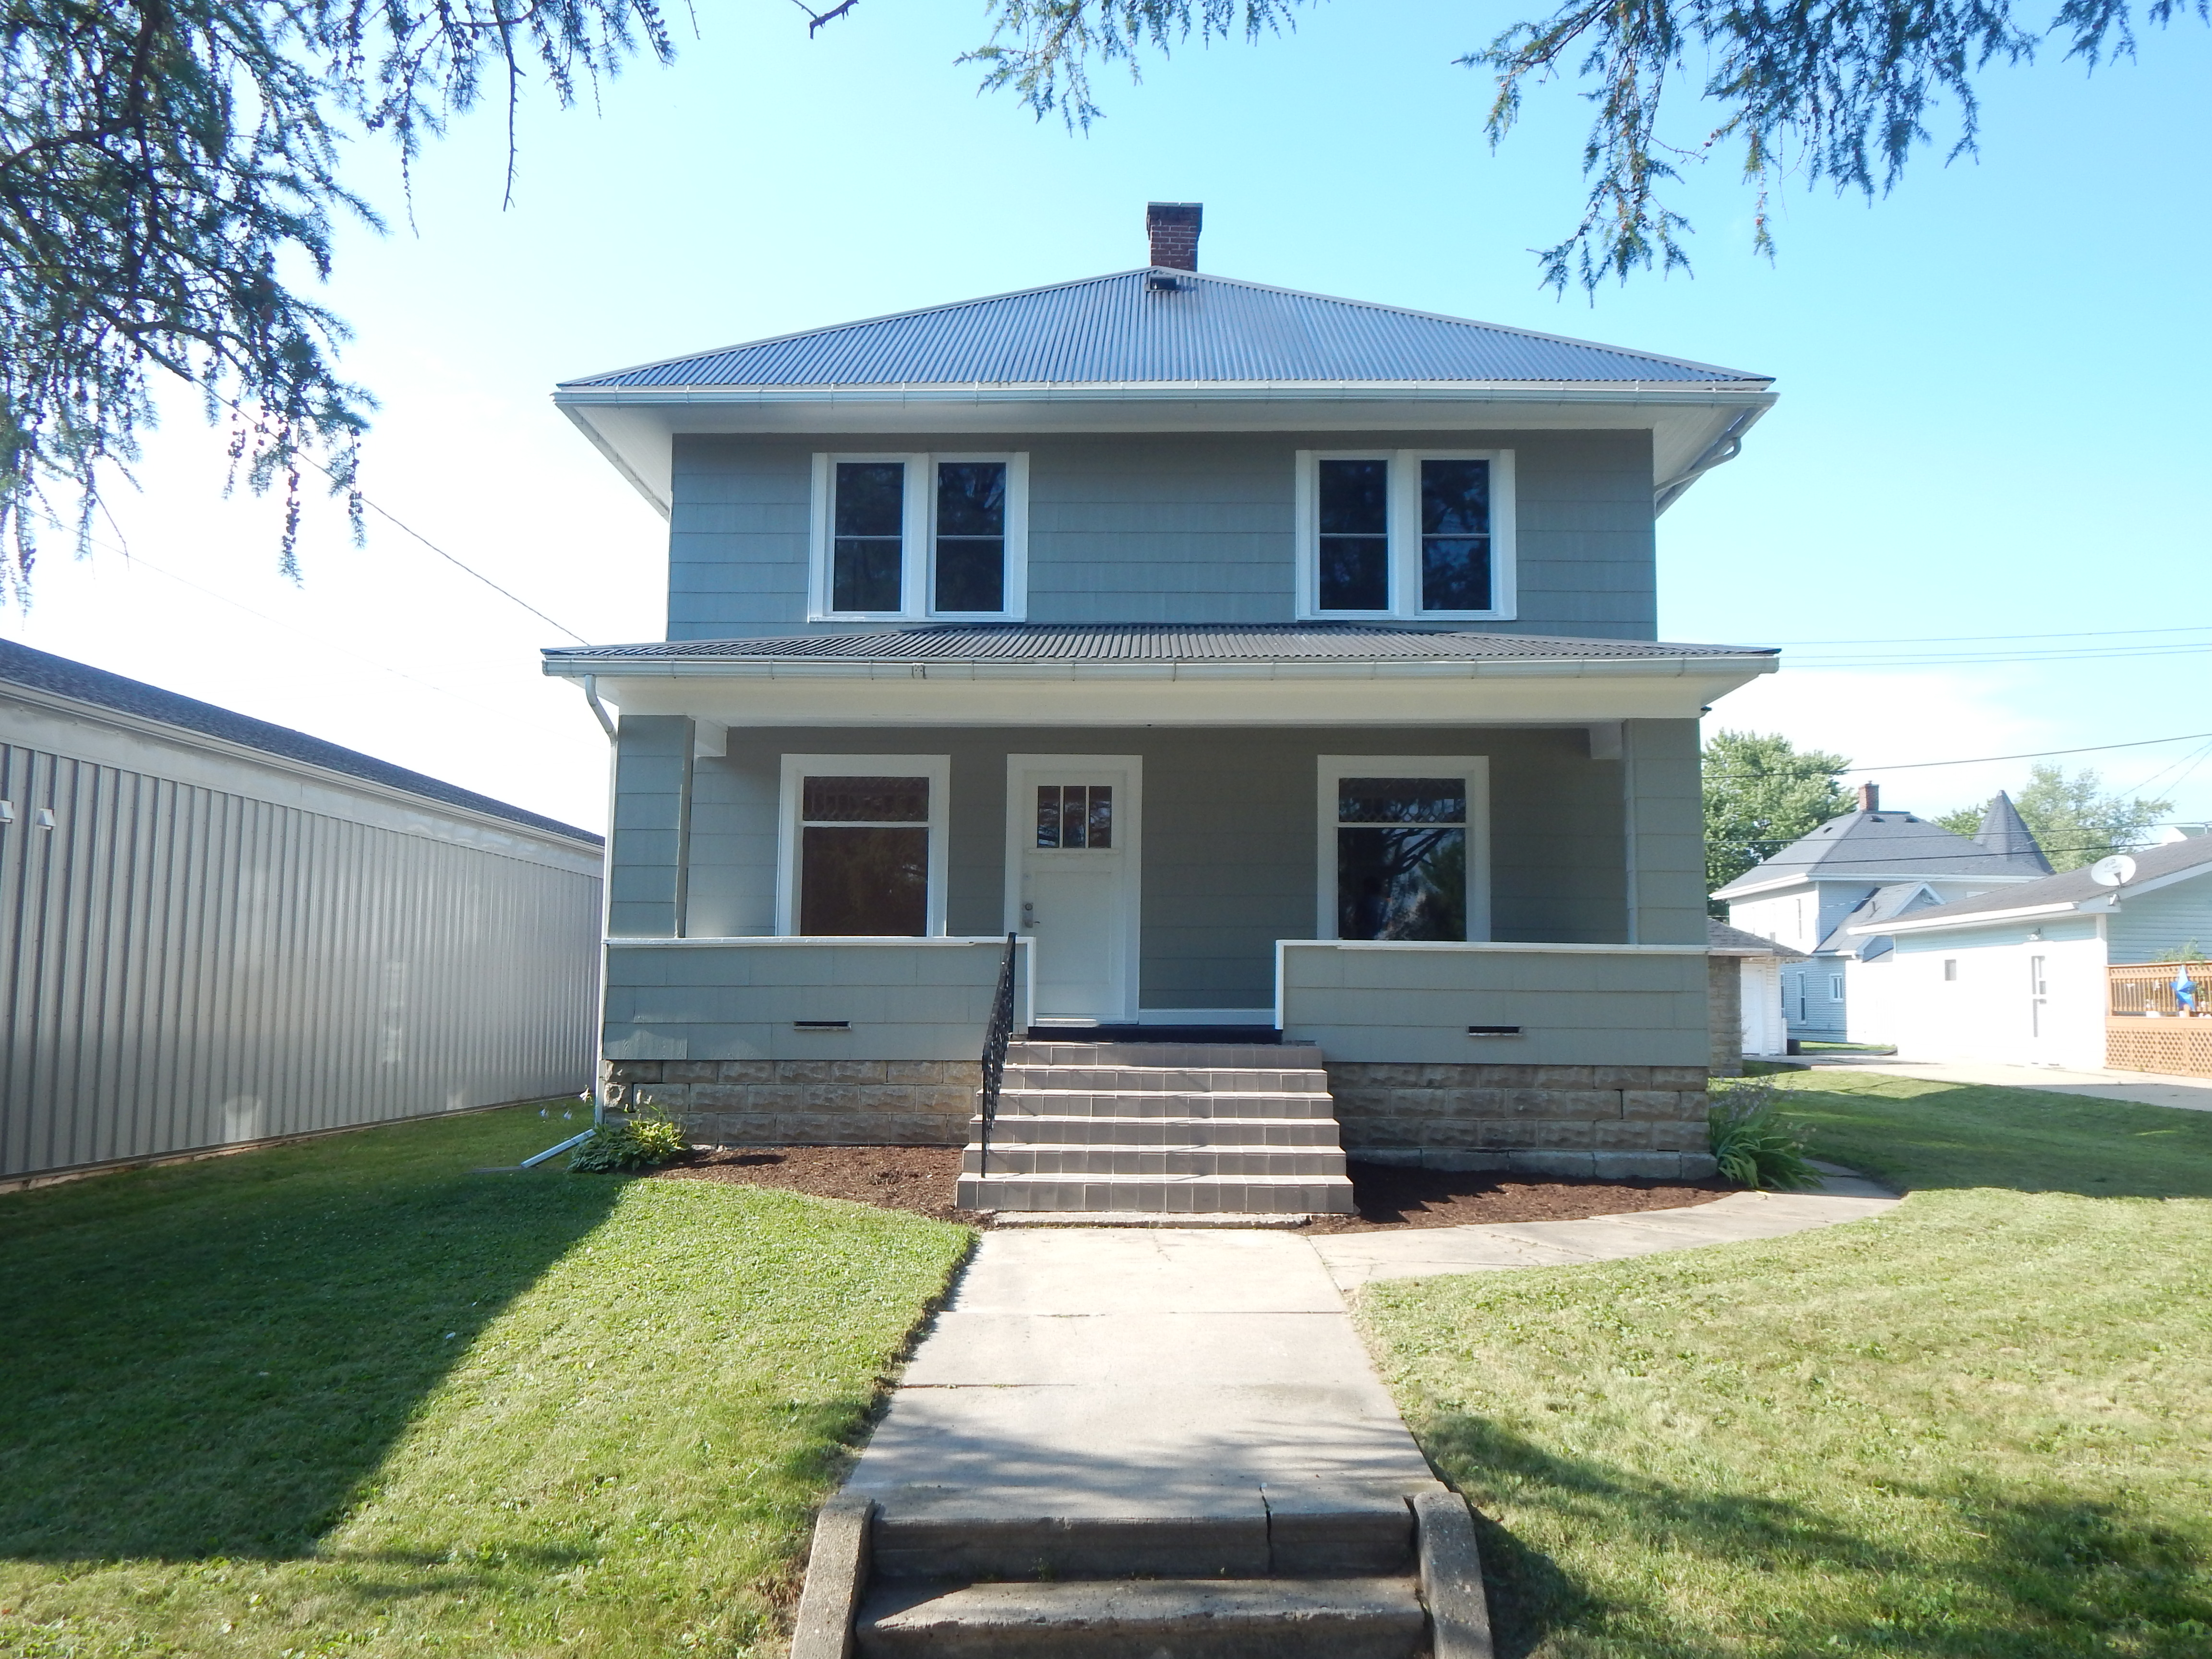 OPEN HOUSE || Sunday AUGUST 20th 11am-12pm || 412 3rd Ave SE, Dyersville IA